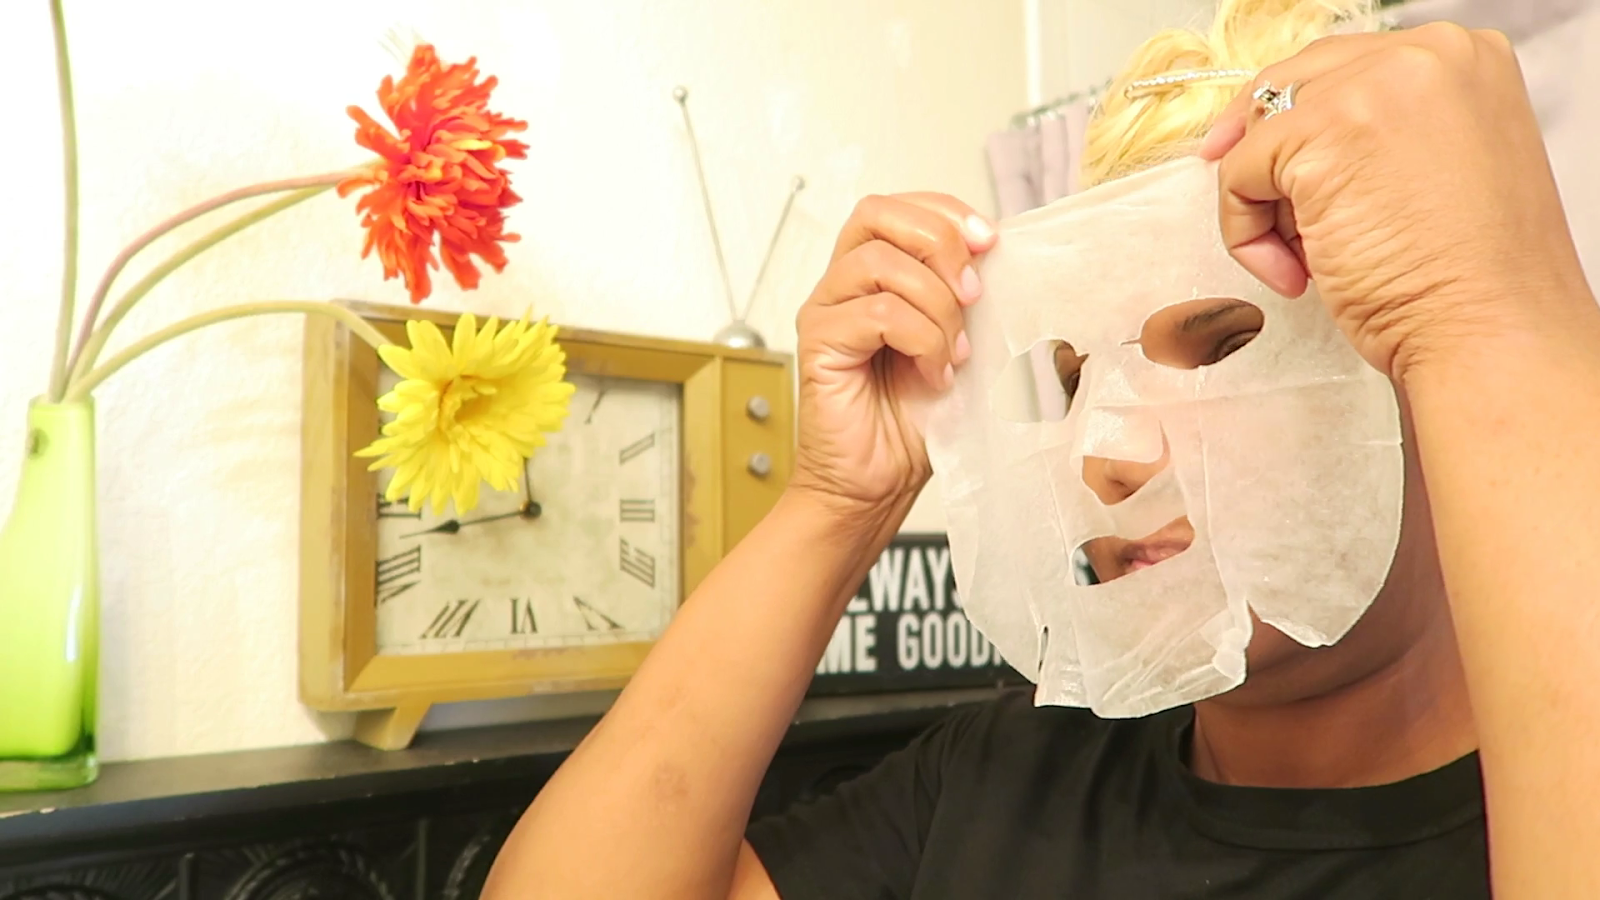 Image:Woman trying on beauty mask